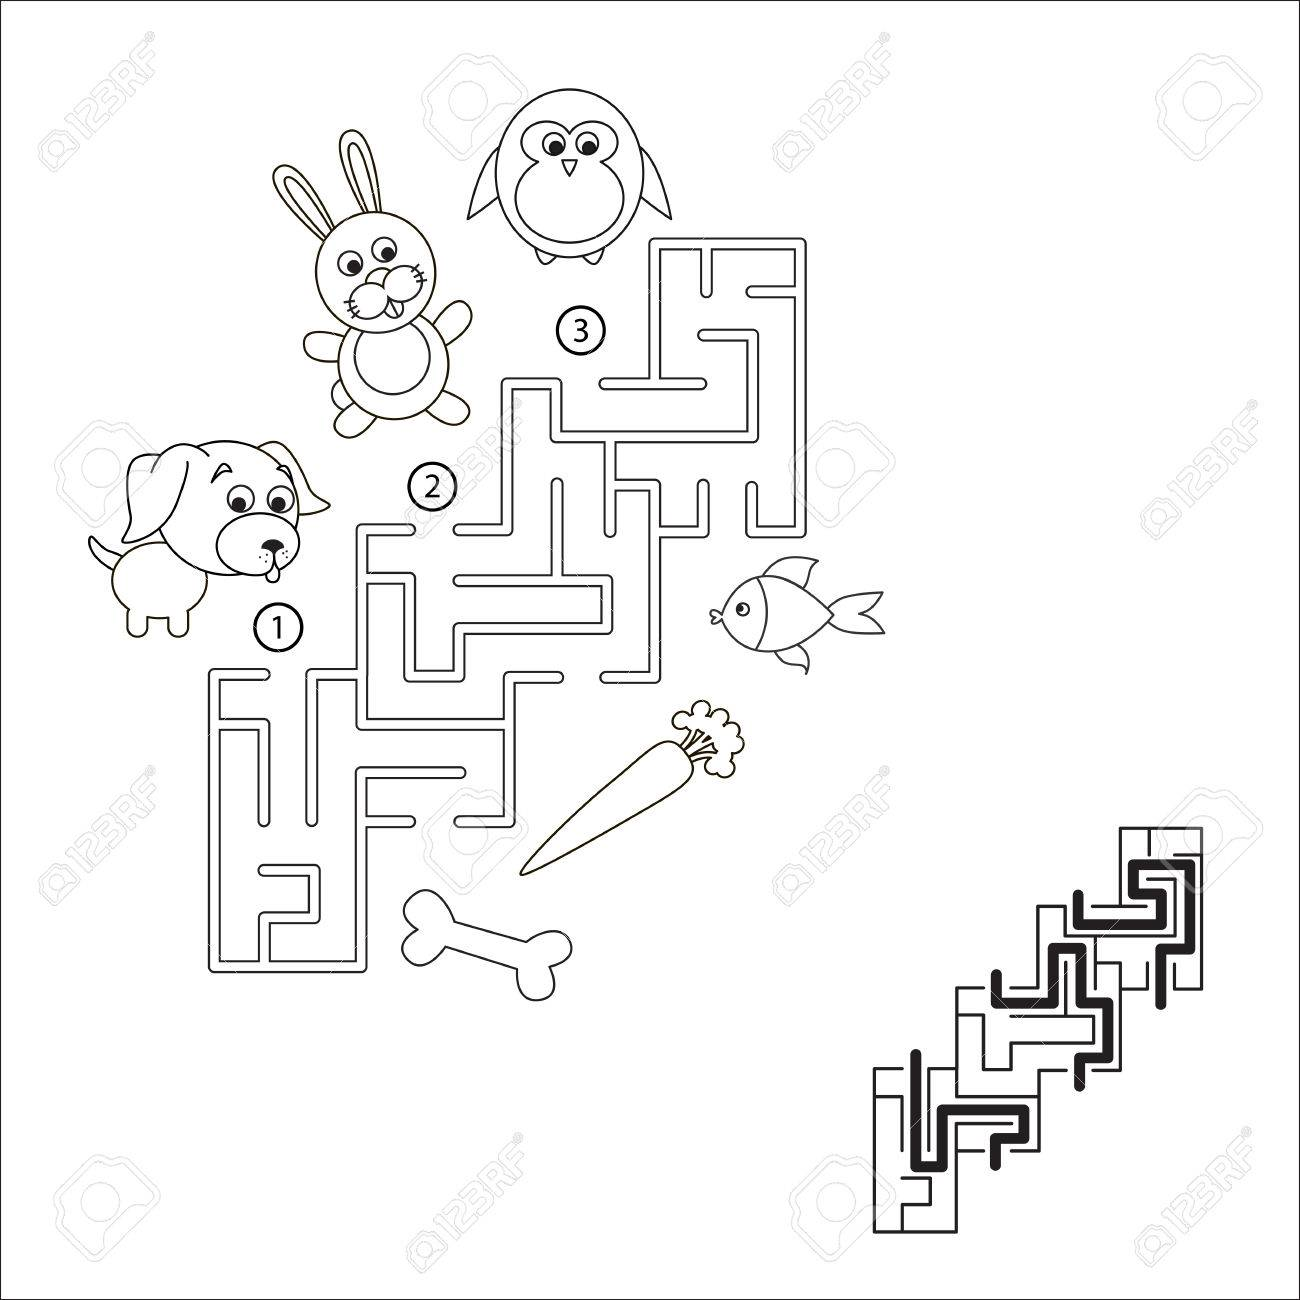 find hidden right way task and answer maze game for children search and - Hidden Pictures For Children